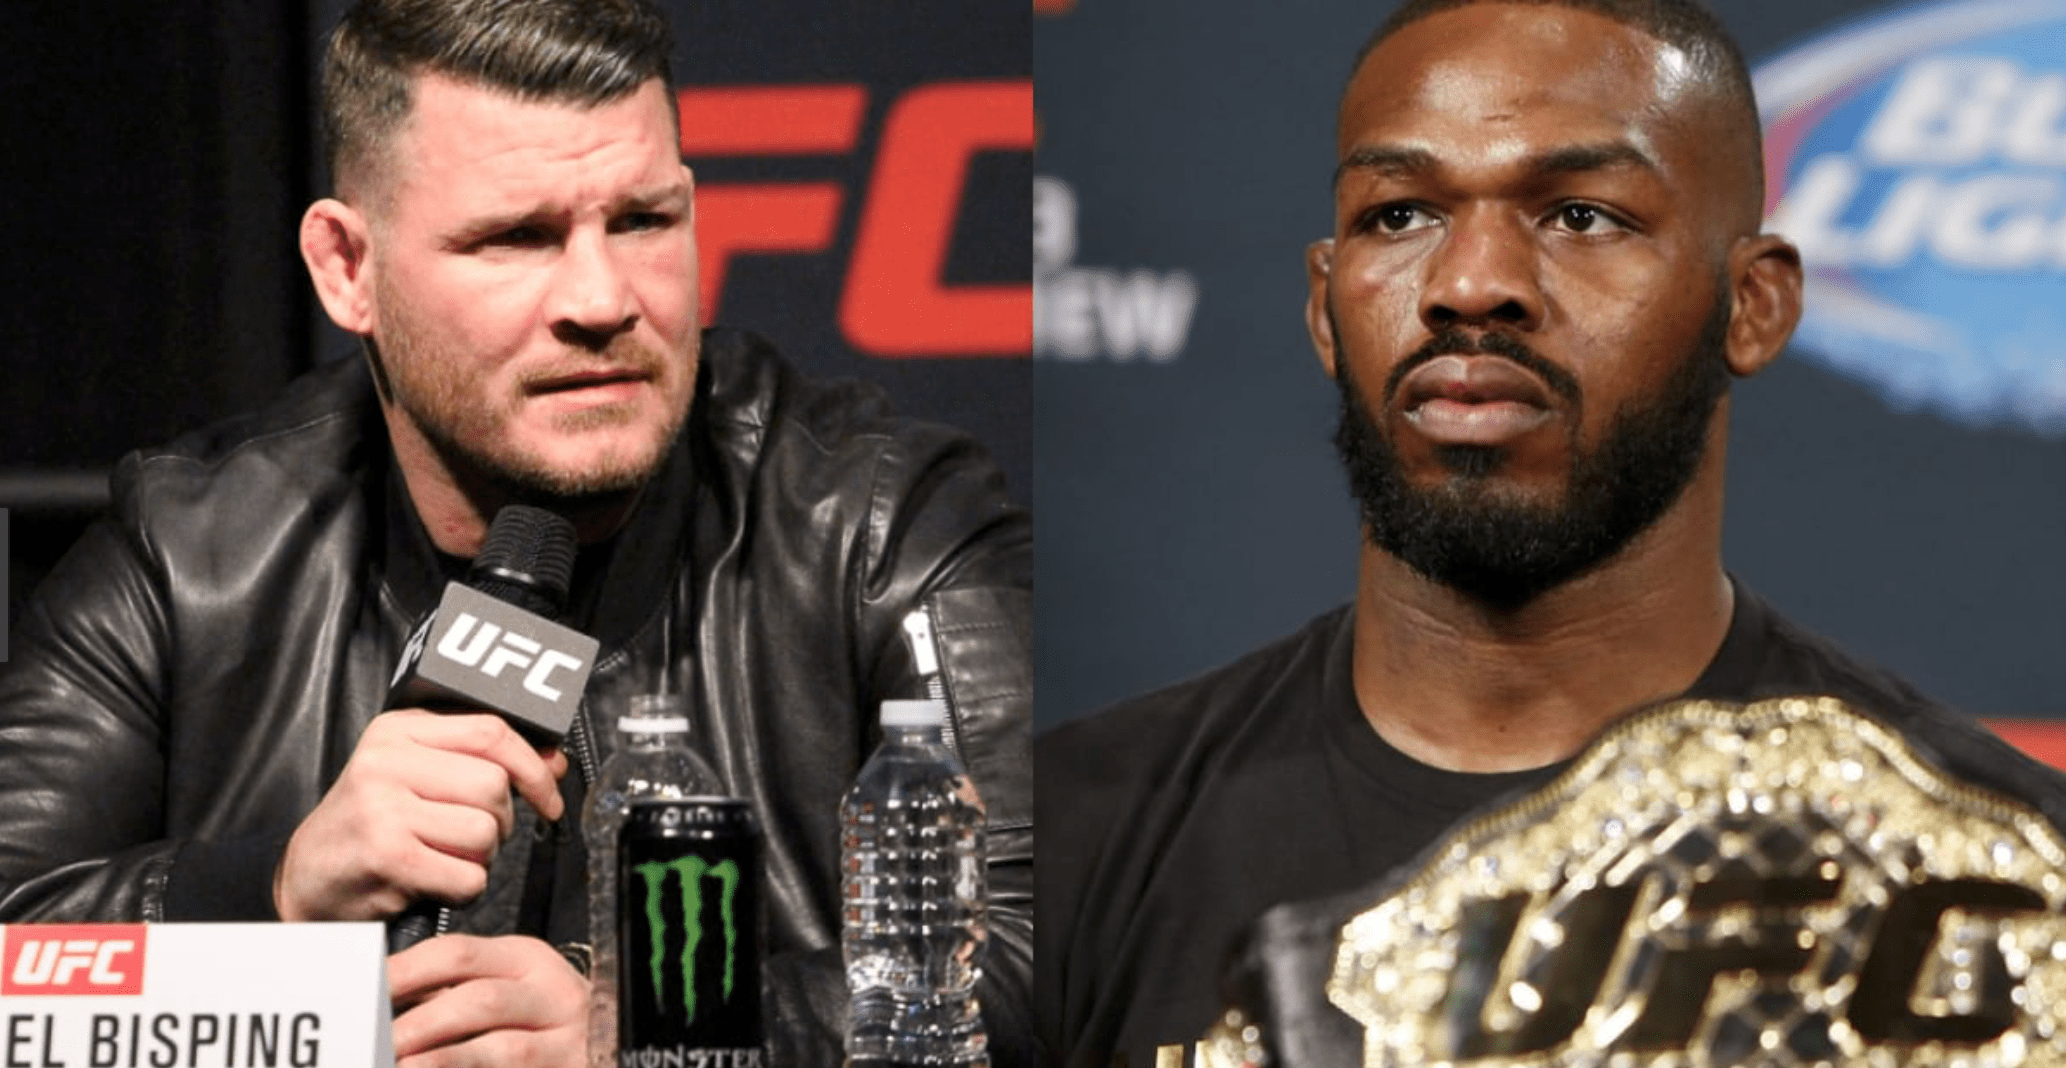 Michael Bisping Reveals Profane Exchange With Jon Jones At UFC 232